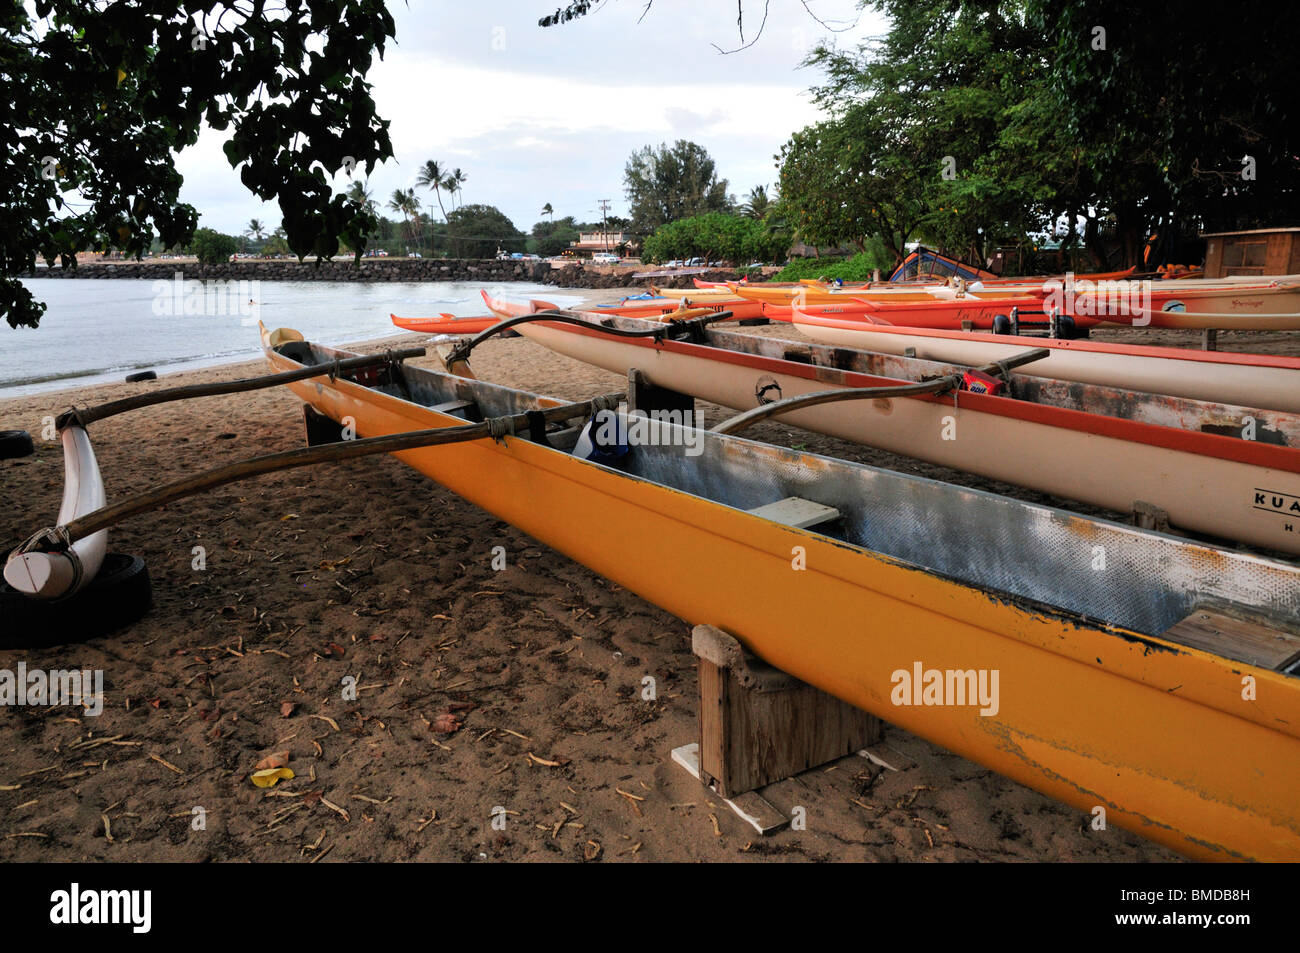 Modern outrigger canoes at the Outrigger Canoe Club, Haleiwa, Oahu, Hawaii, USA - Stock Image